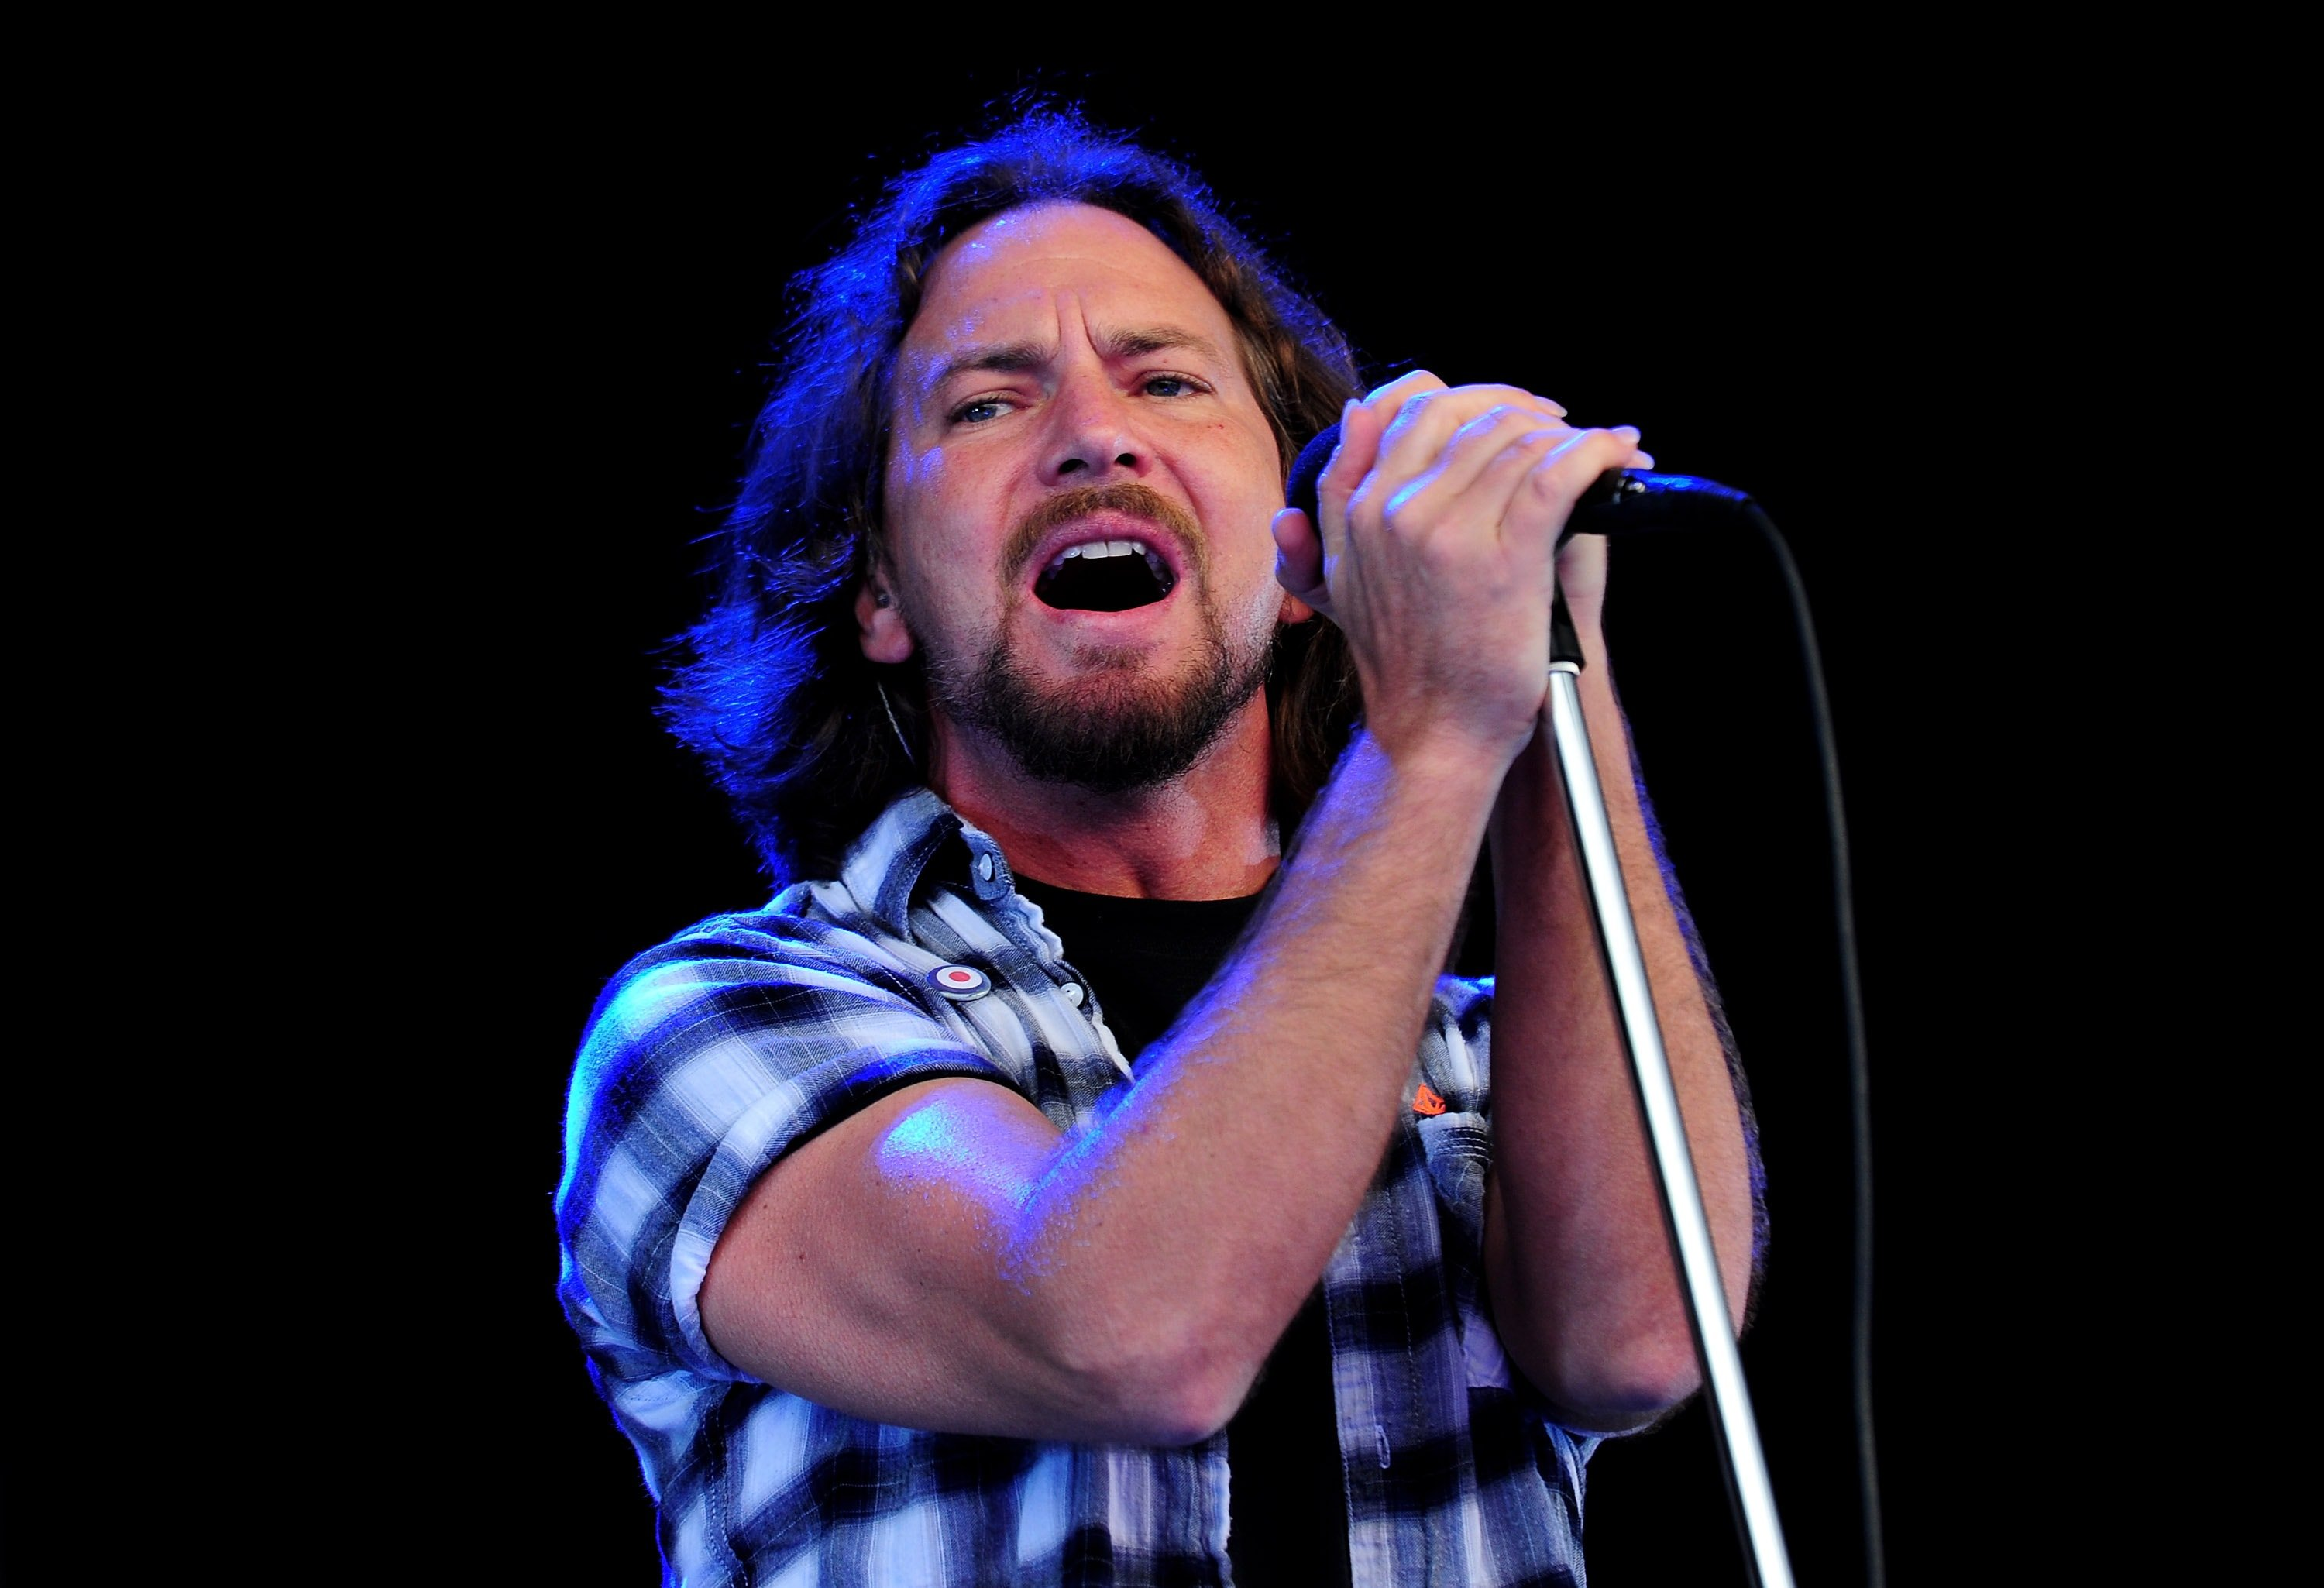 LONDON, ENGLAND - JUNE 25: Eddie Vedder of Pearl Jam performs during day 1 of the Hard Rock Calling festival held in Hyde Park on June 25, 2010 in London, England.